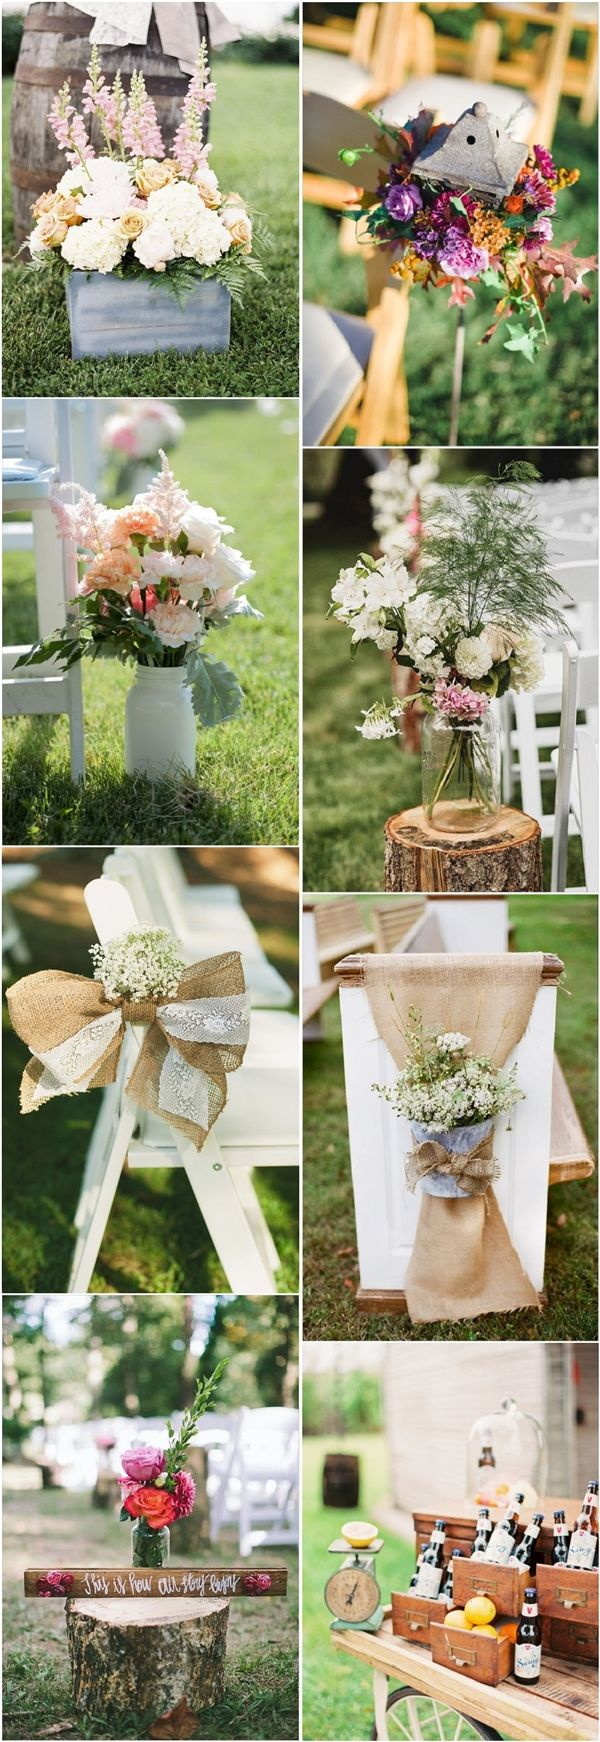 481 best images about Outdoor Weddings on Pinterest